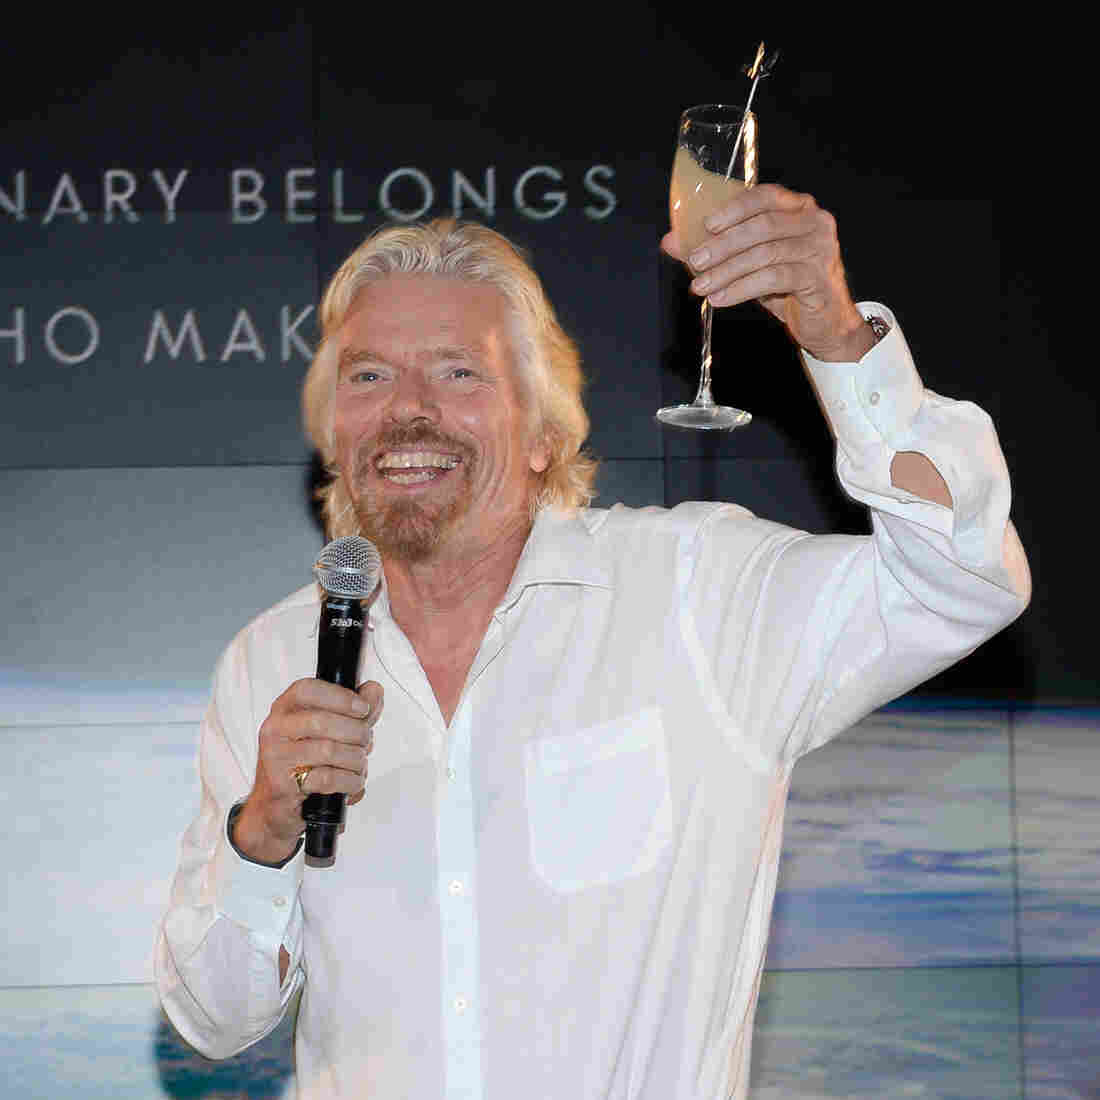 Richard Branson Thinks Employees Should Have Unlimited Vacation